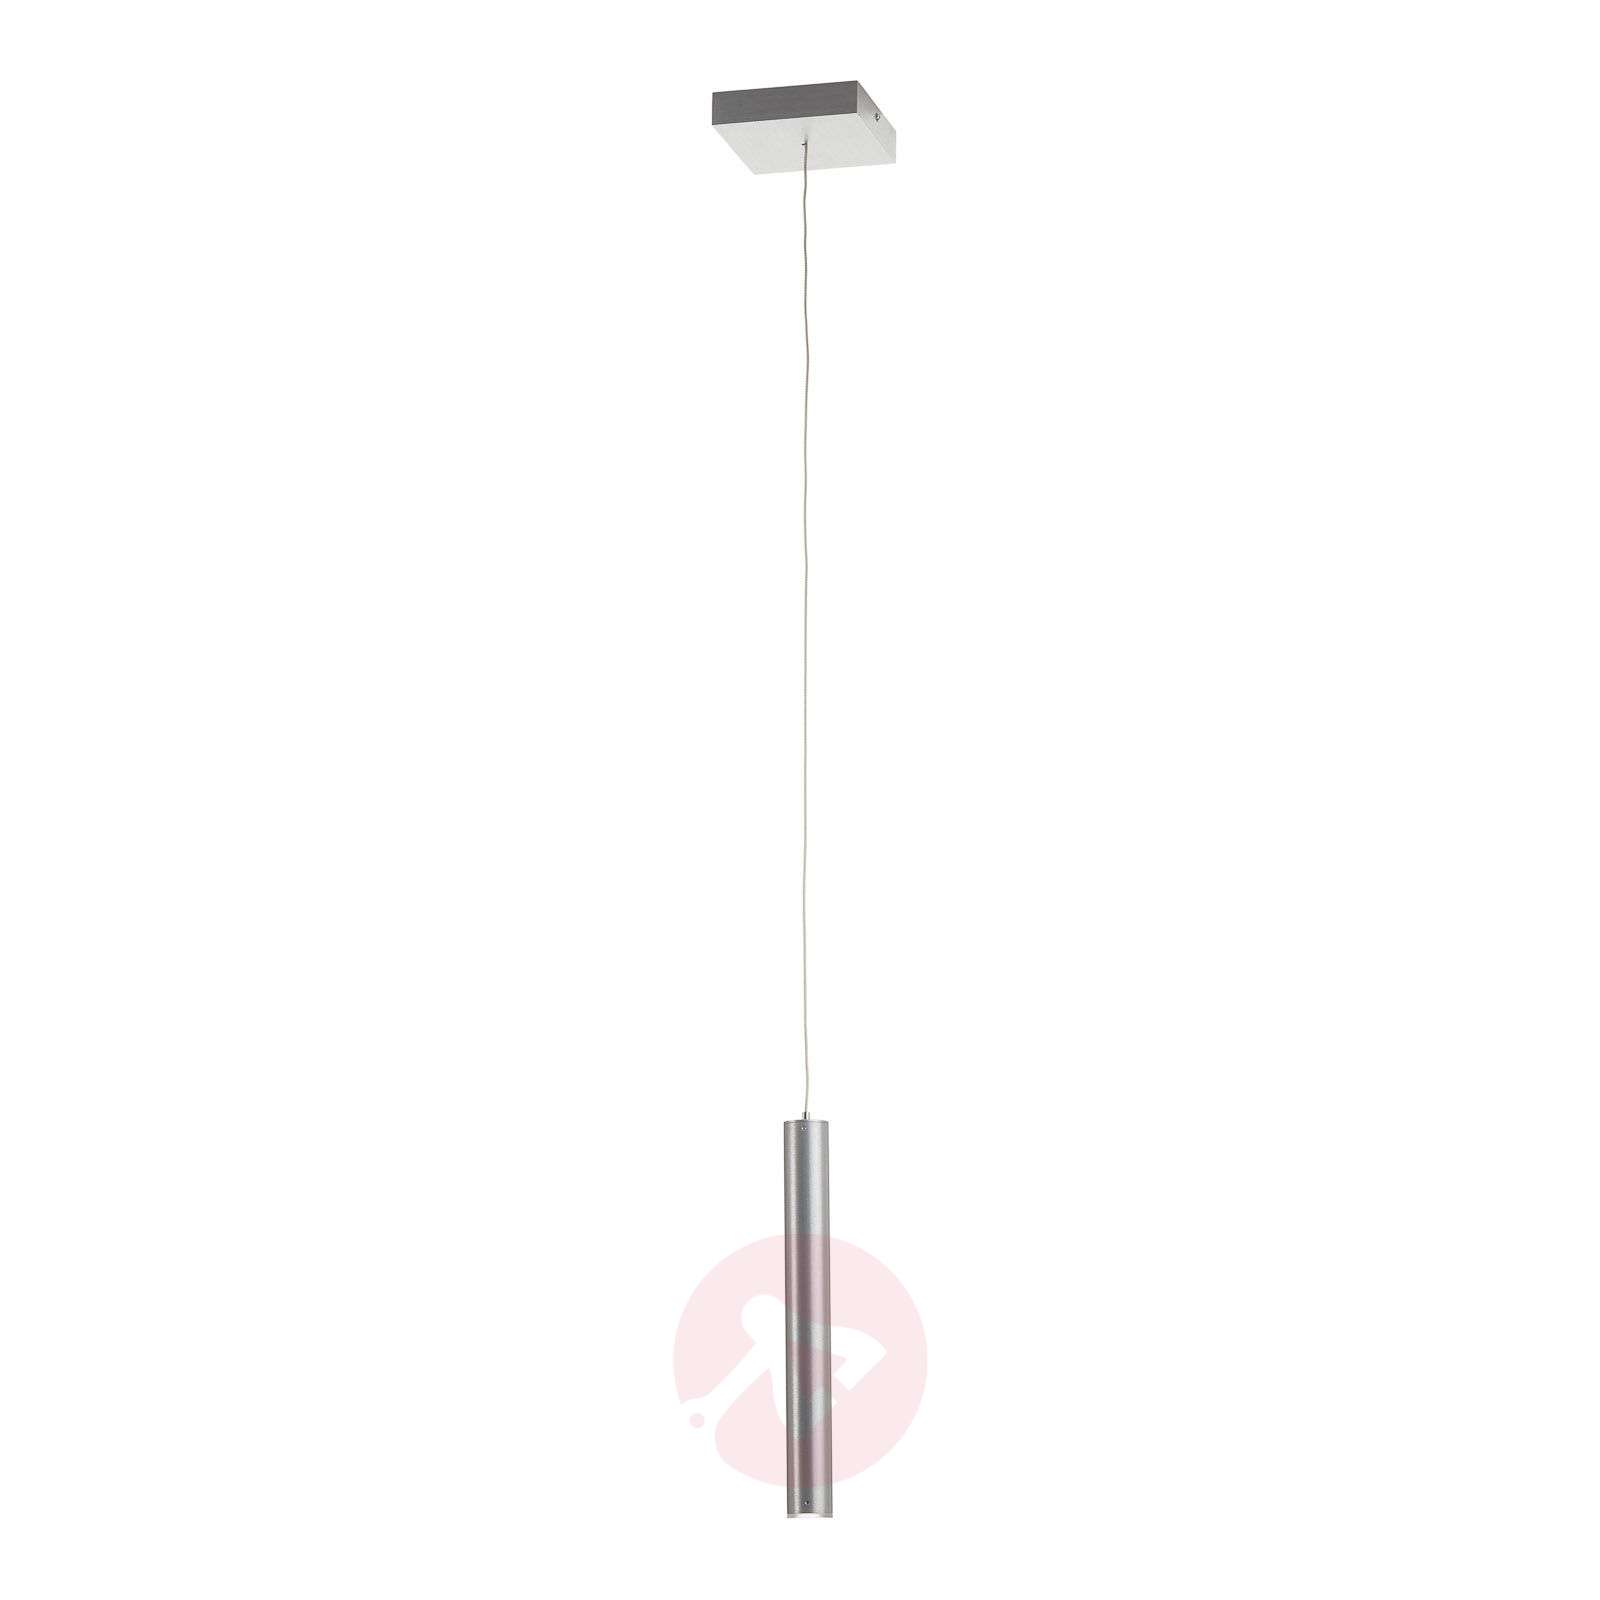 Lámpara colgante LED Plus de altura ajustable-1556137-01